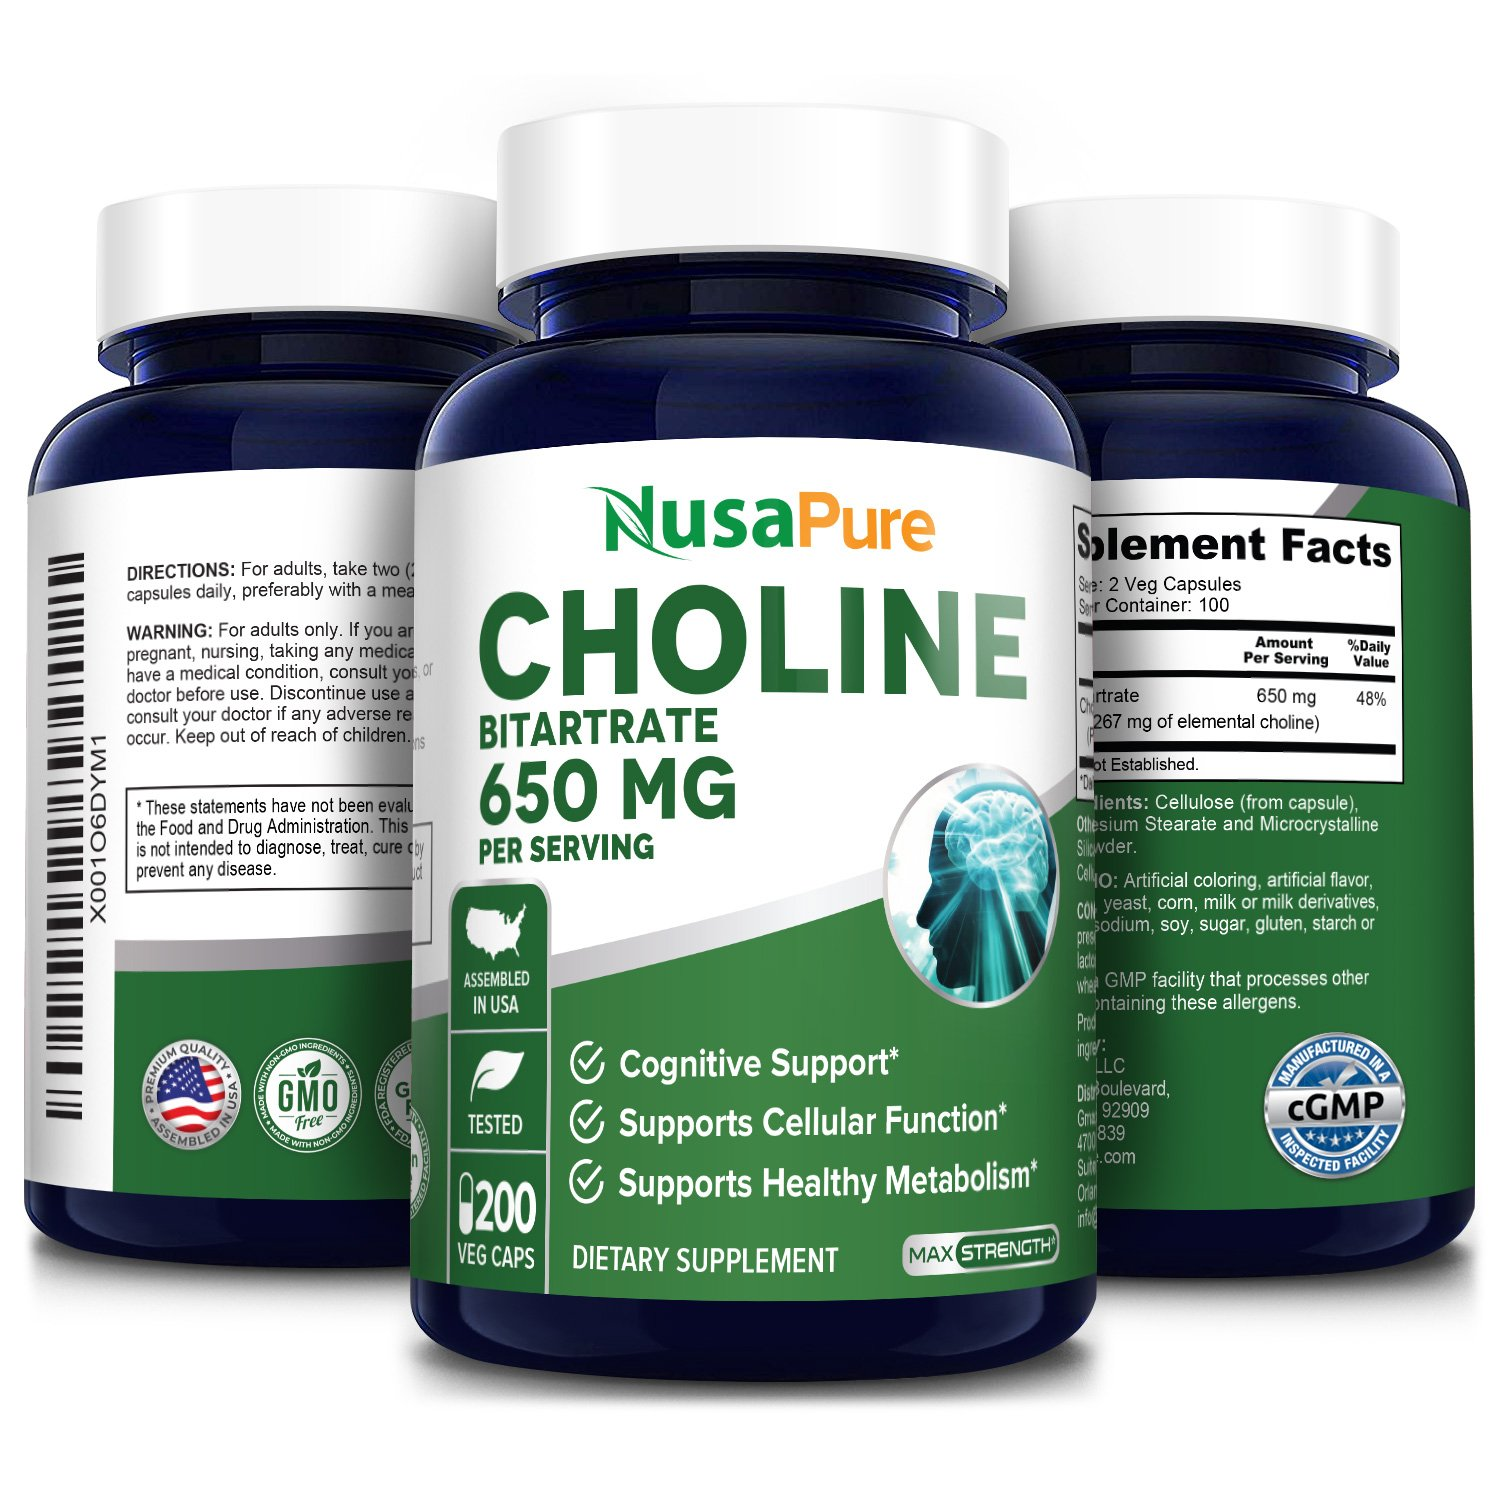 Choline Bitartrate 650 mg - 200 Veg Caps (100% Vegetarian, Non-GMO & Gluten-free)